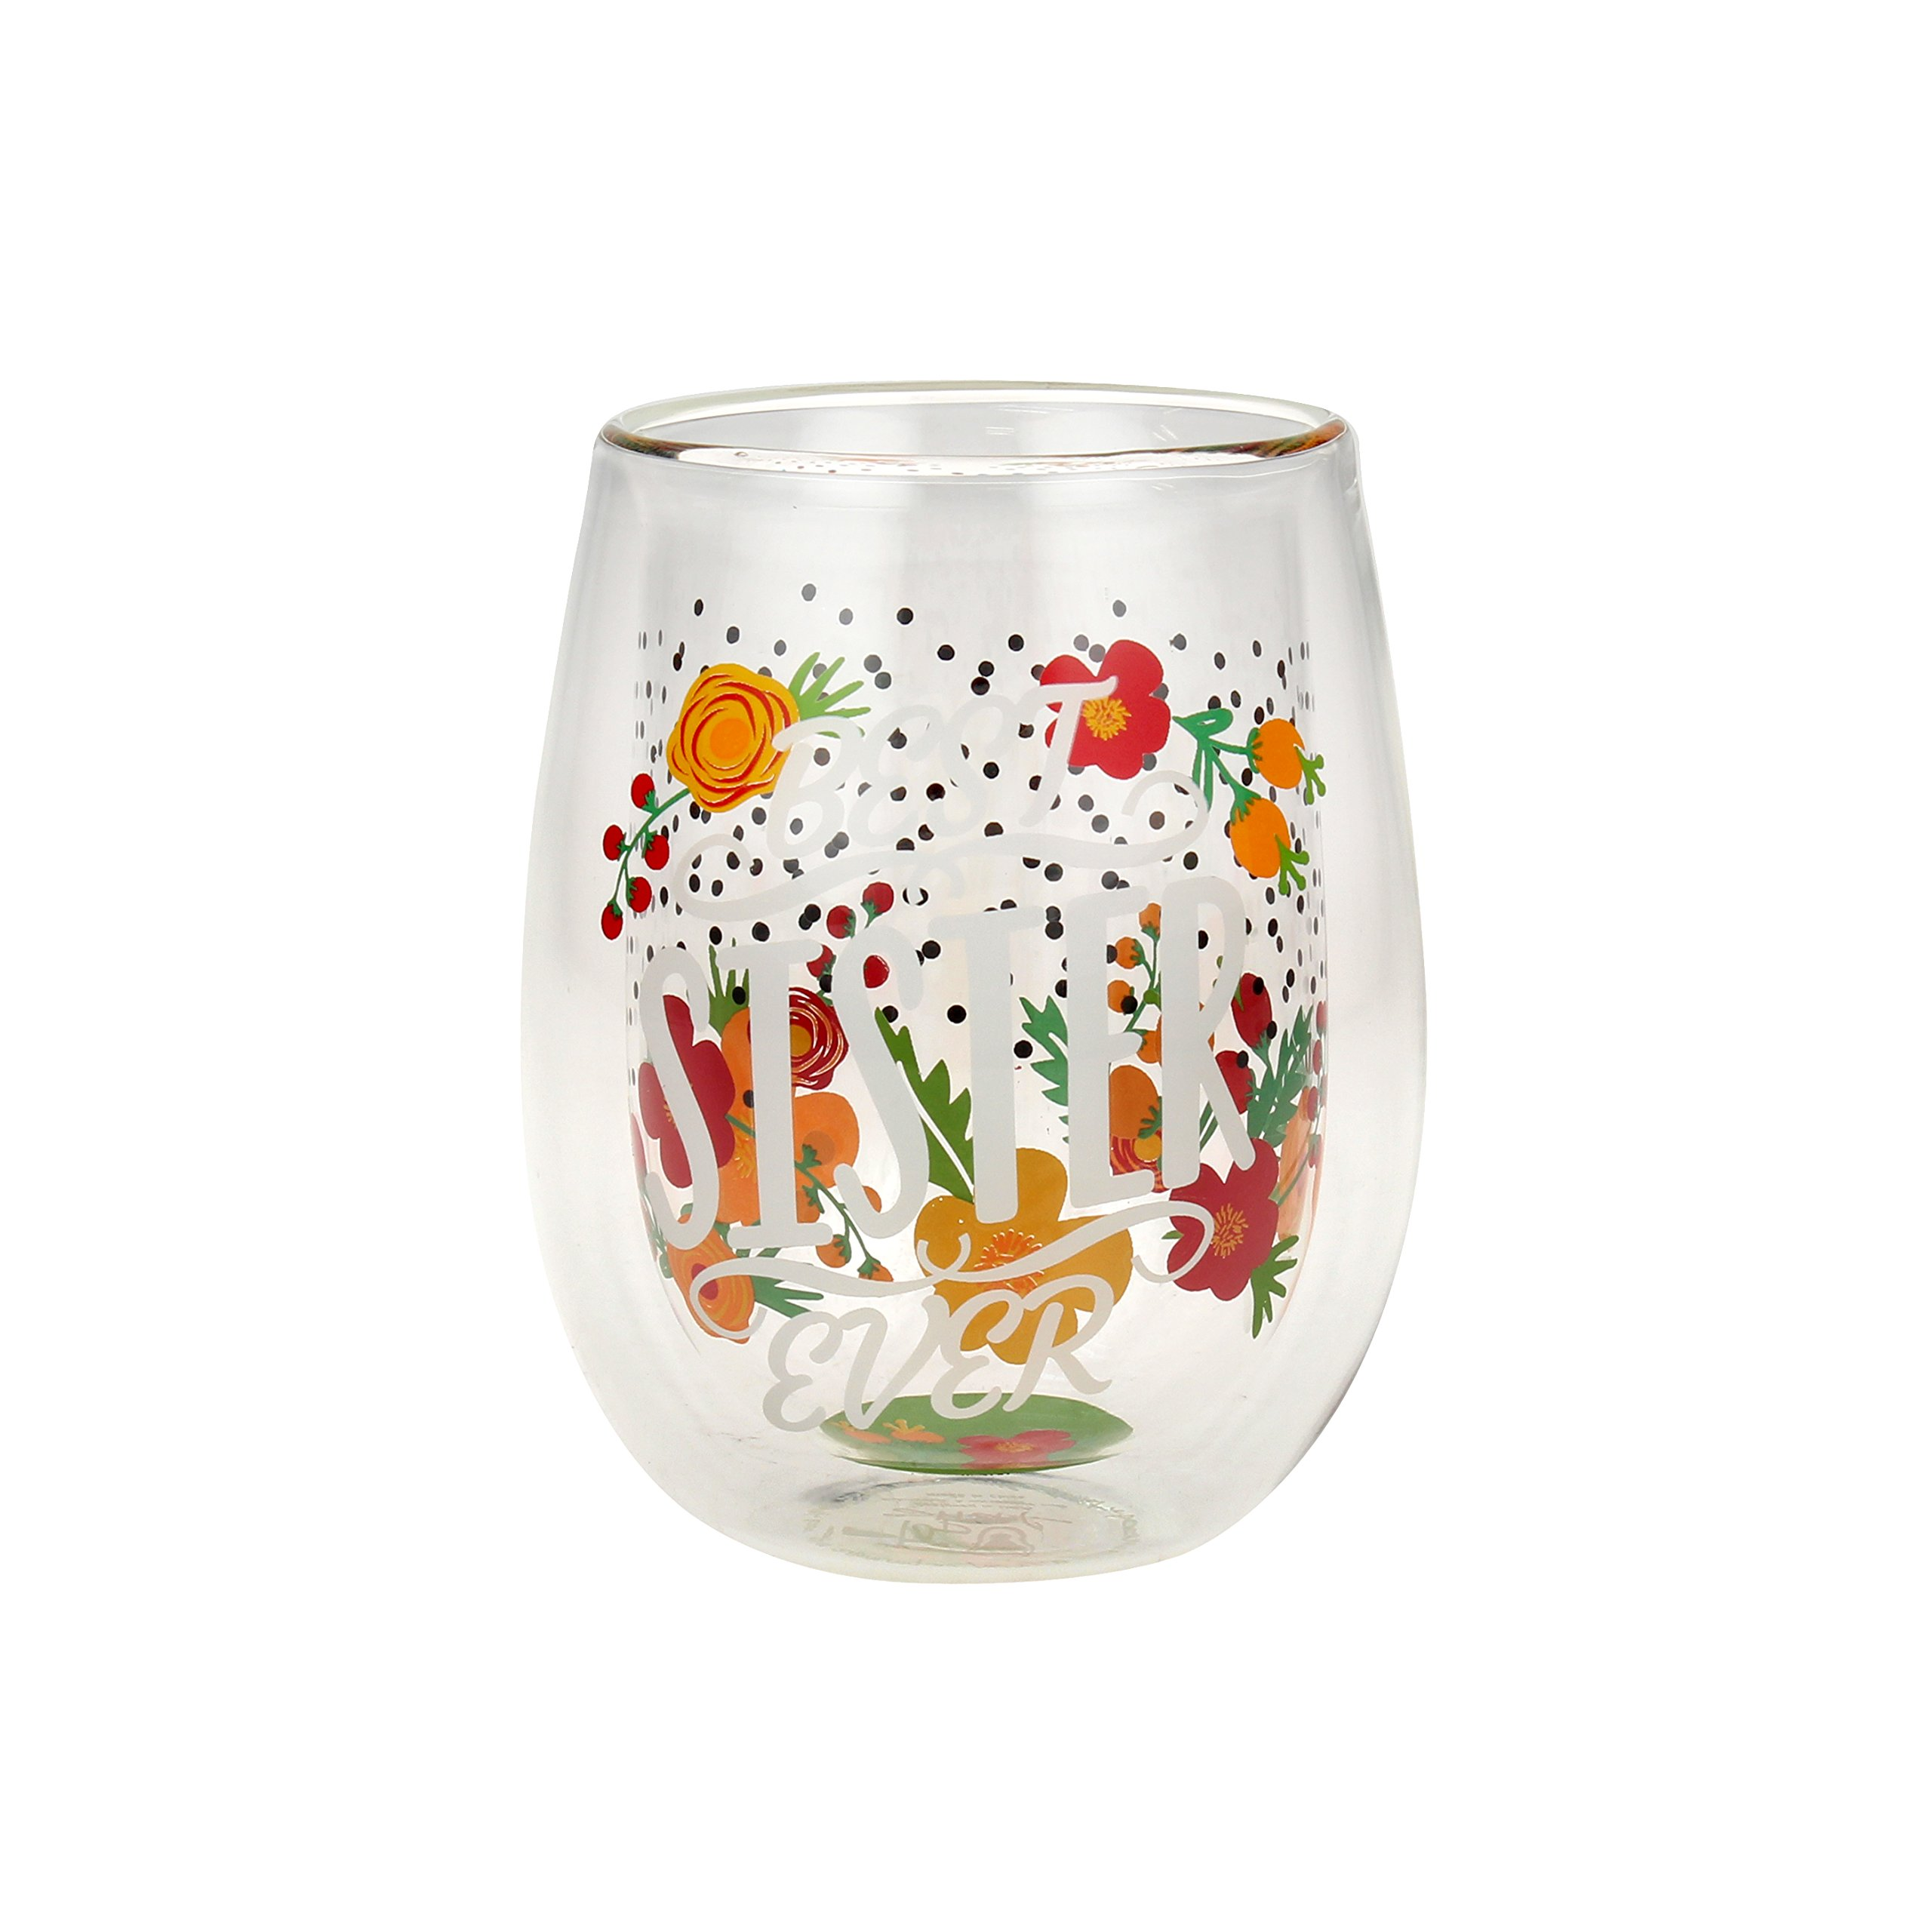 Top Shelf Double Wall Stemless ''Best Sister Ever'' Wine Glass, Multicolor, Red or White Wine, Unique & Fun Gift Idea for Birthdays, Christmas, or Any Holiday